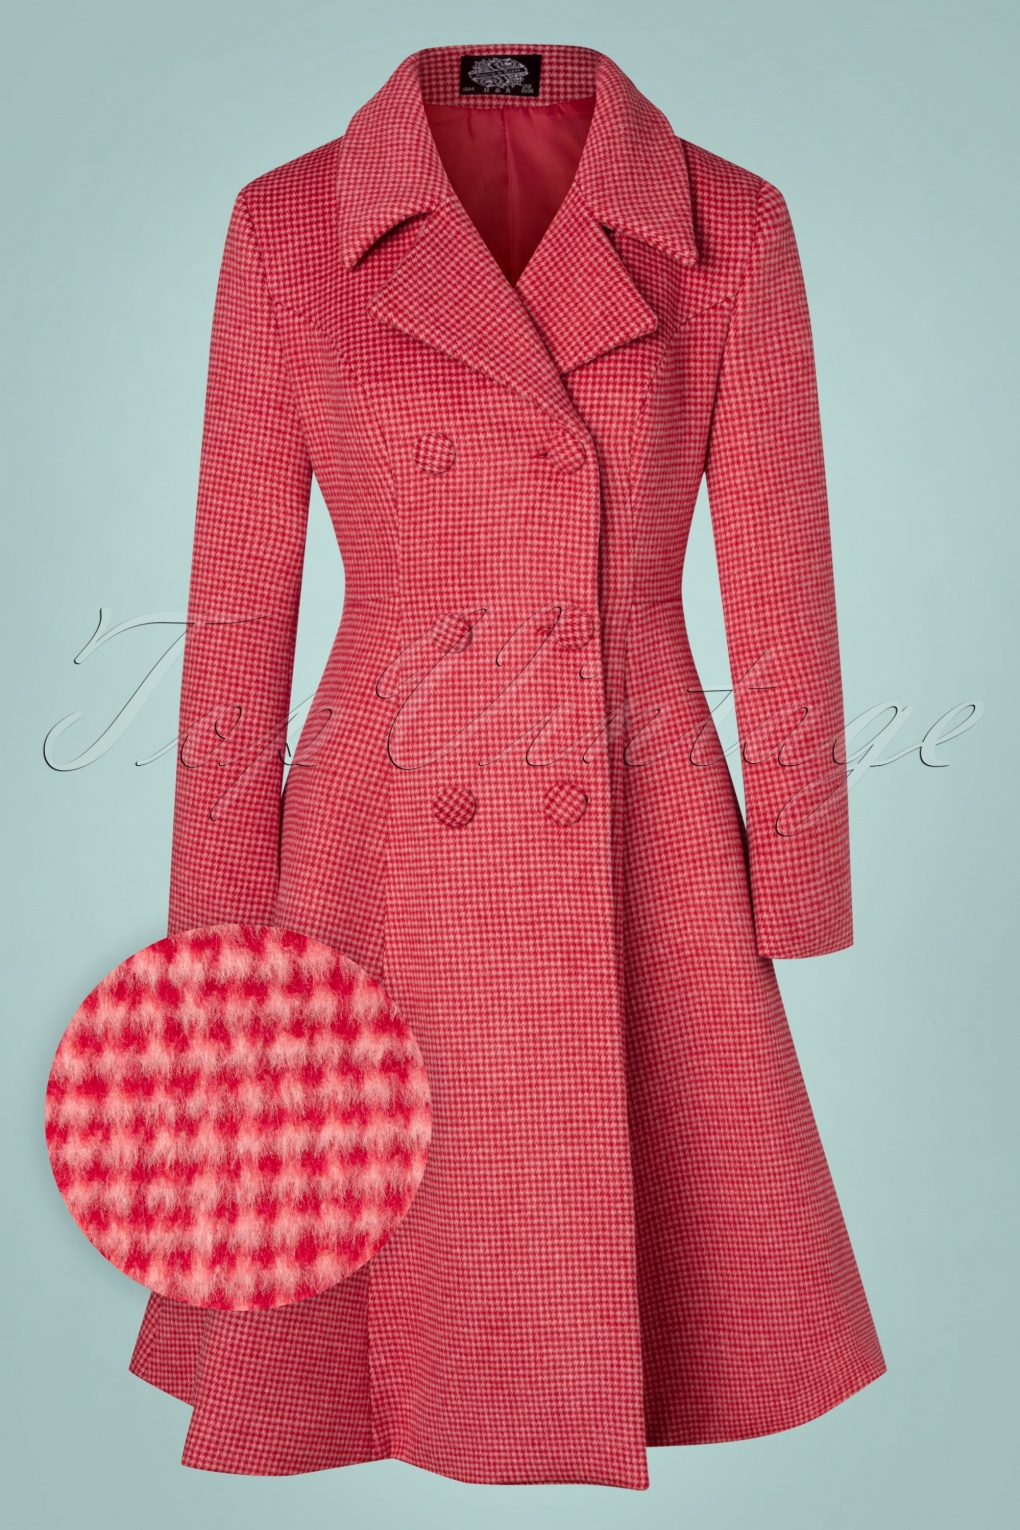 1950s Jackets, Coats, Bolero | Swing, Pin Up, Rockabilly 50s Rosalie Wool Swing Coat in Red and Pink £151.48 AT vintagedancer.com